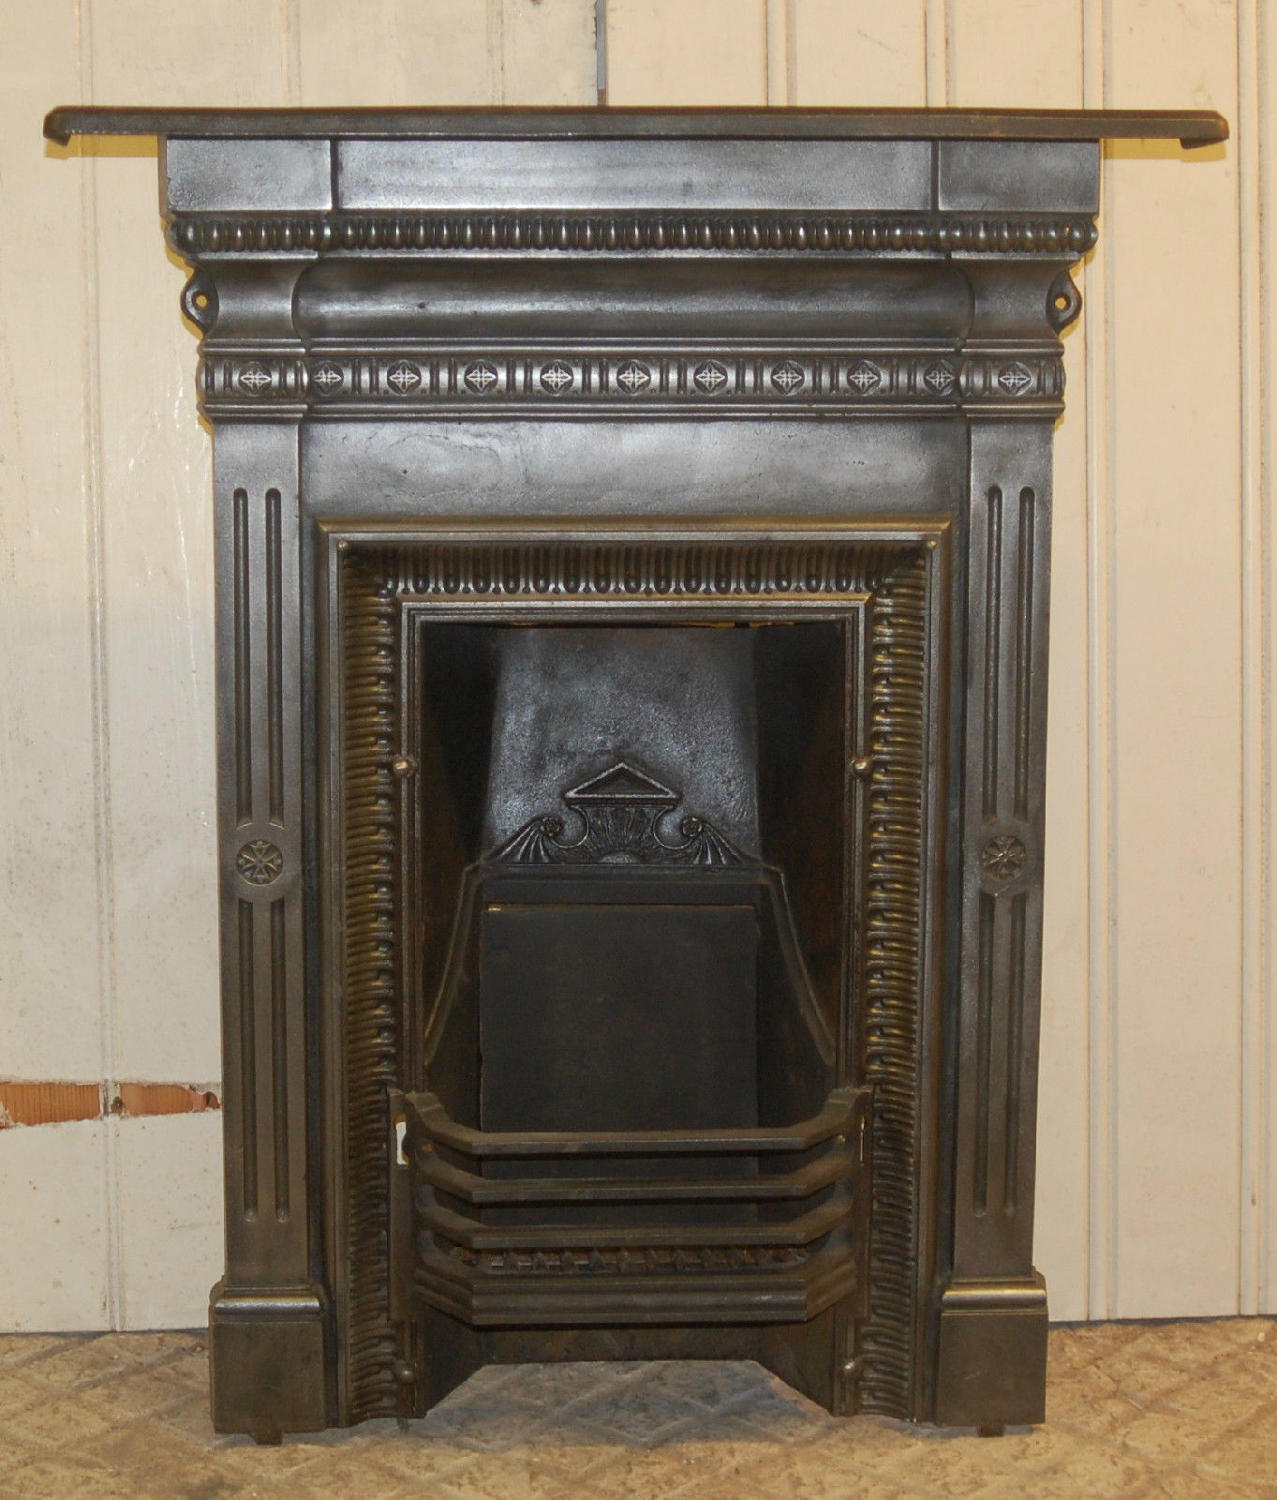 FC0028 A Decorative Victorian Cast Iron Combination Bedroom Fireplace